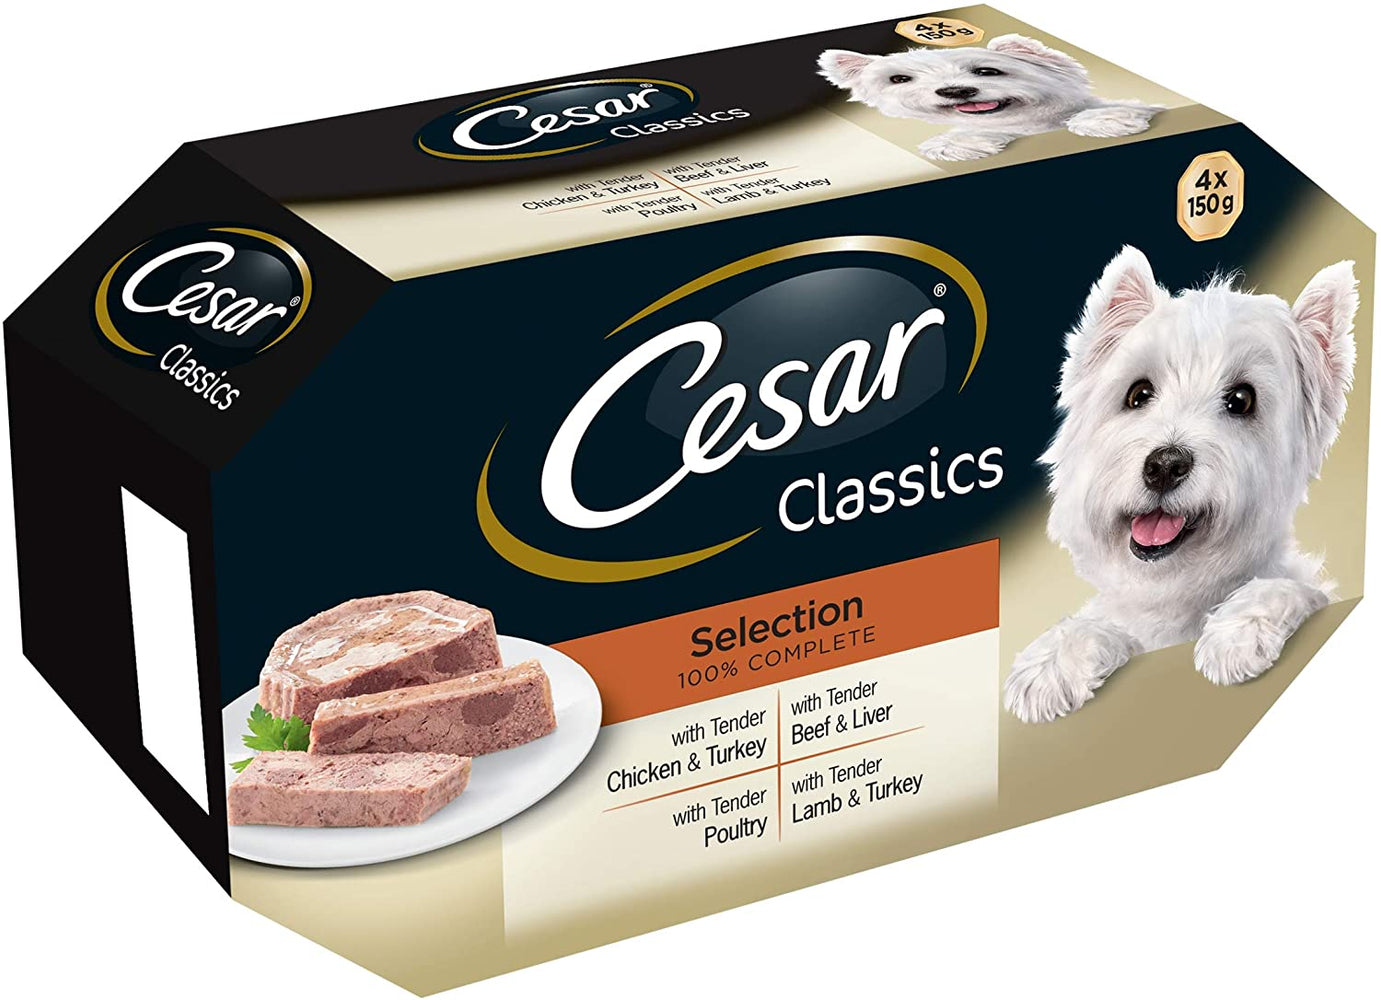 Cesar Tray Classics Selection 4 Pack - 150g